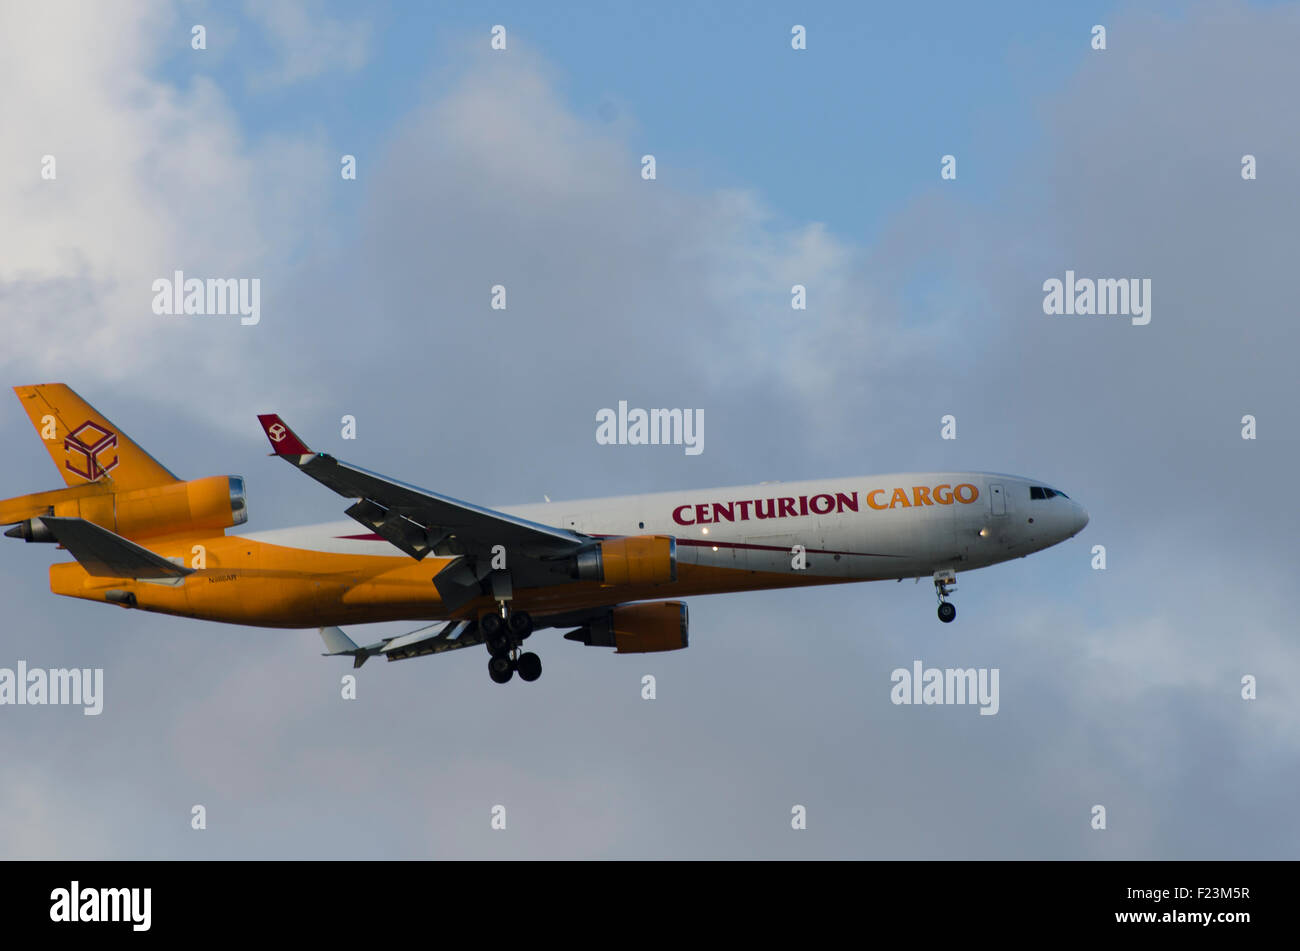 Centurion Cargo MD-11 aircraft flying through the skies